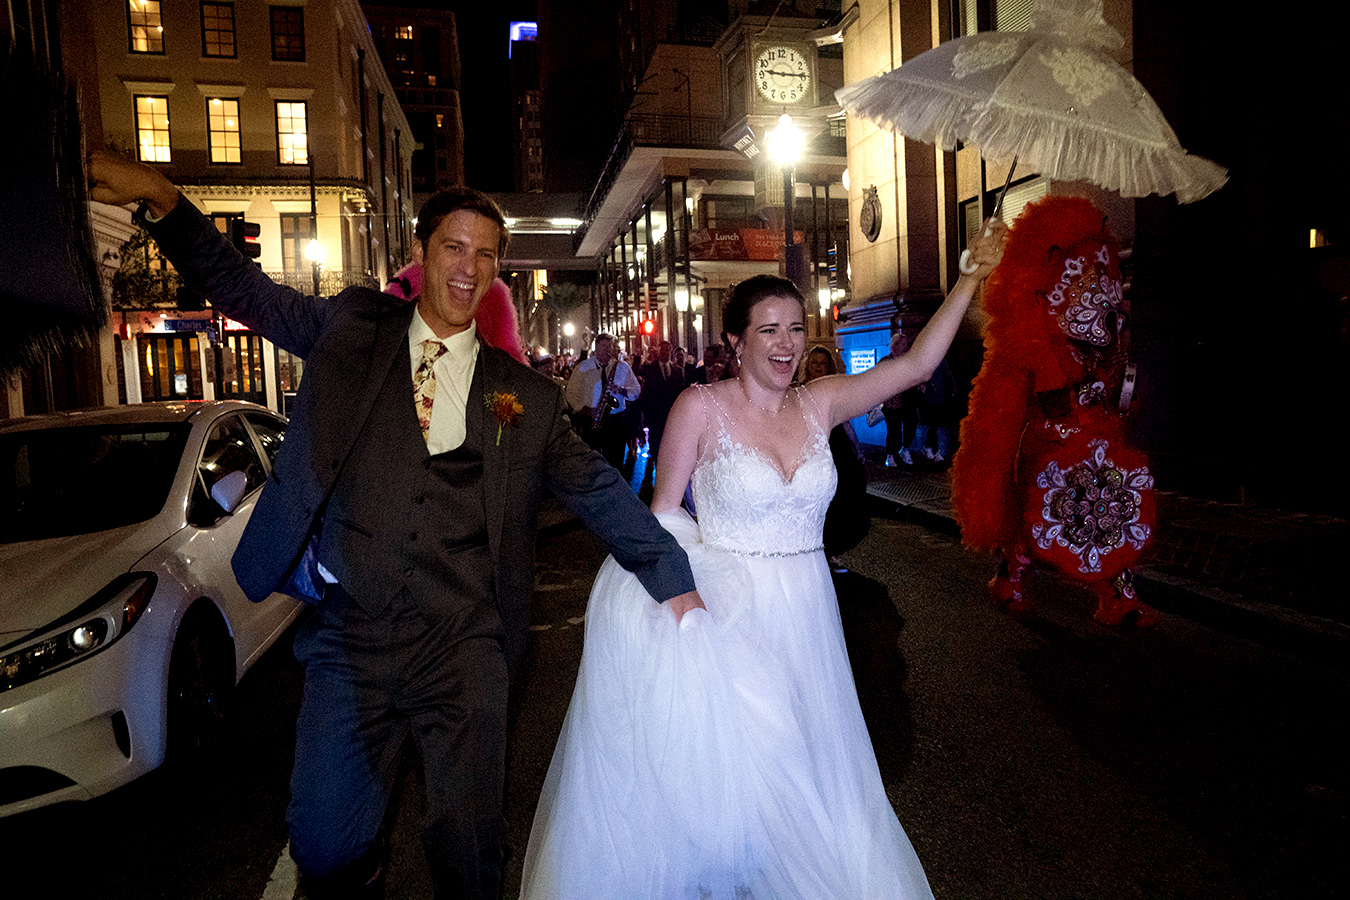 Margaret And Travis Second Line To Their Wedding Reception At The New Orleans Board Of Trade.